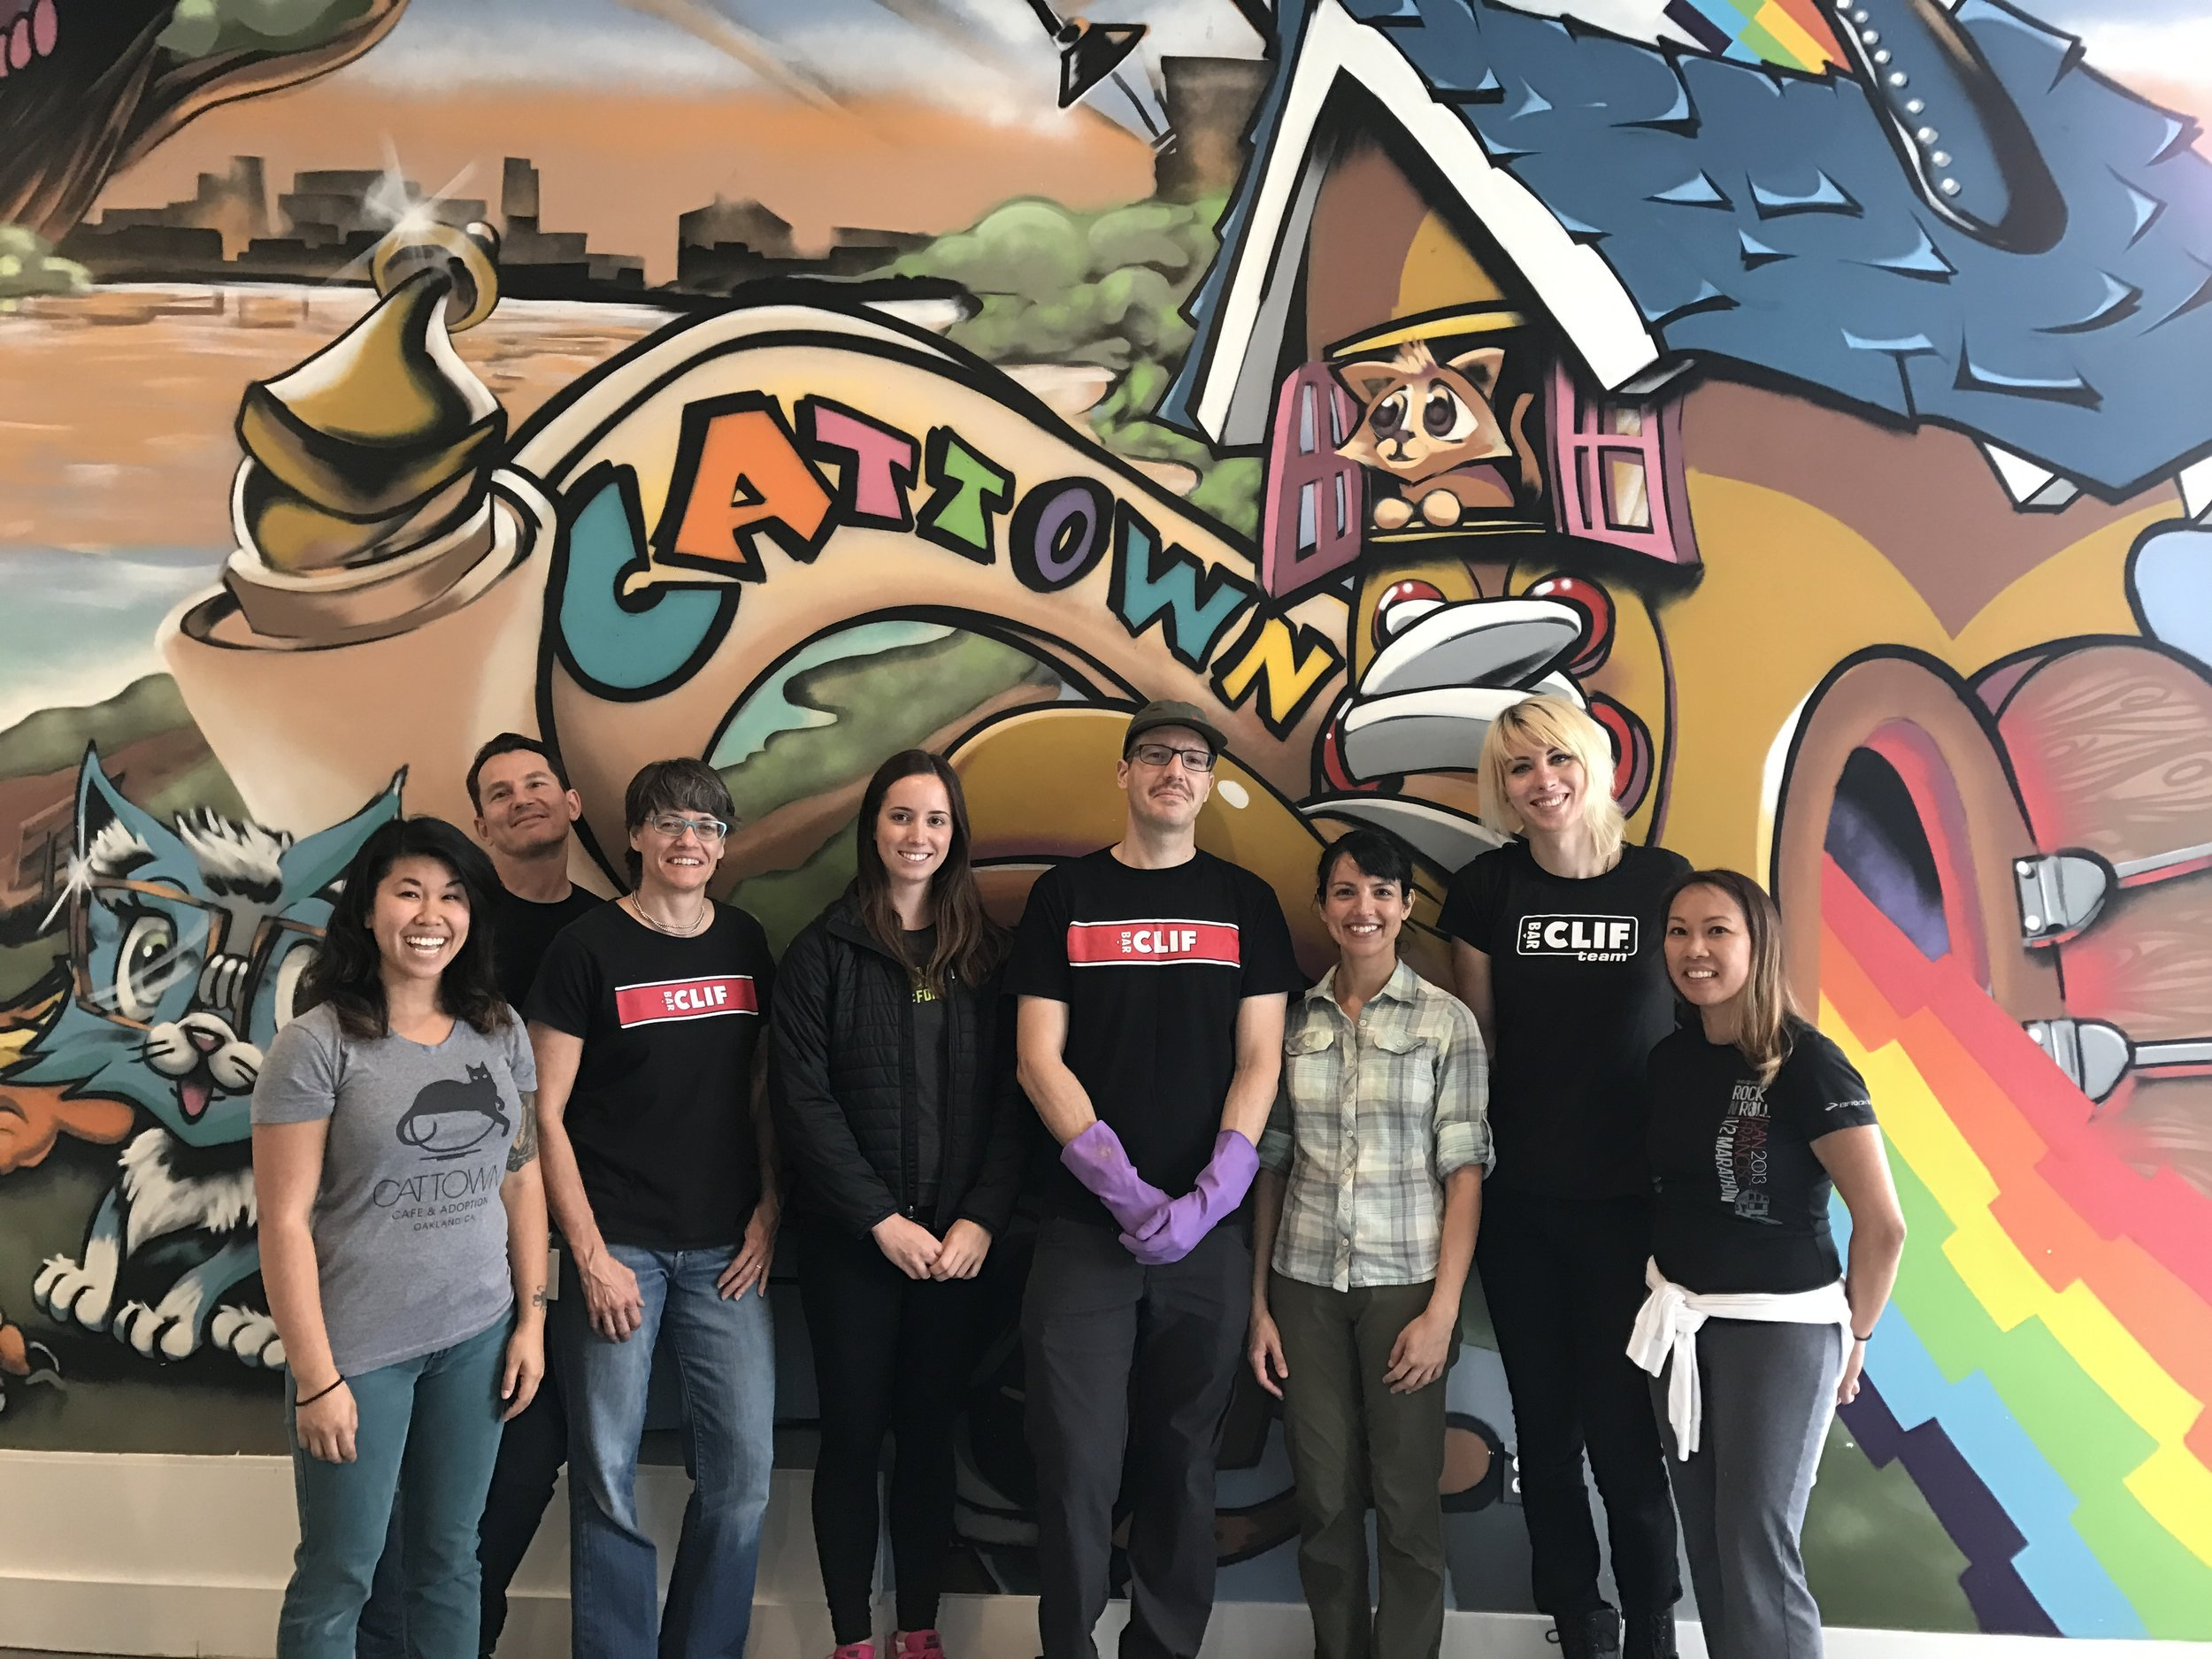 Clif Bar employees have also helped deep clean our Adoption Center to keep our cats healthy. From left to right: Monica, Erik, Sharon, Linden, Nick, Samira, Chris, and Jocelyn.